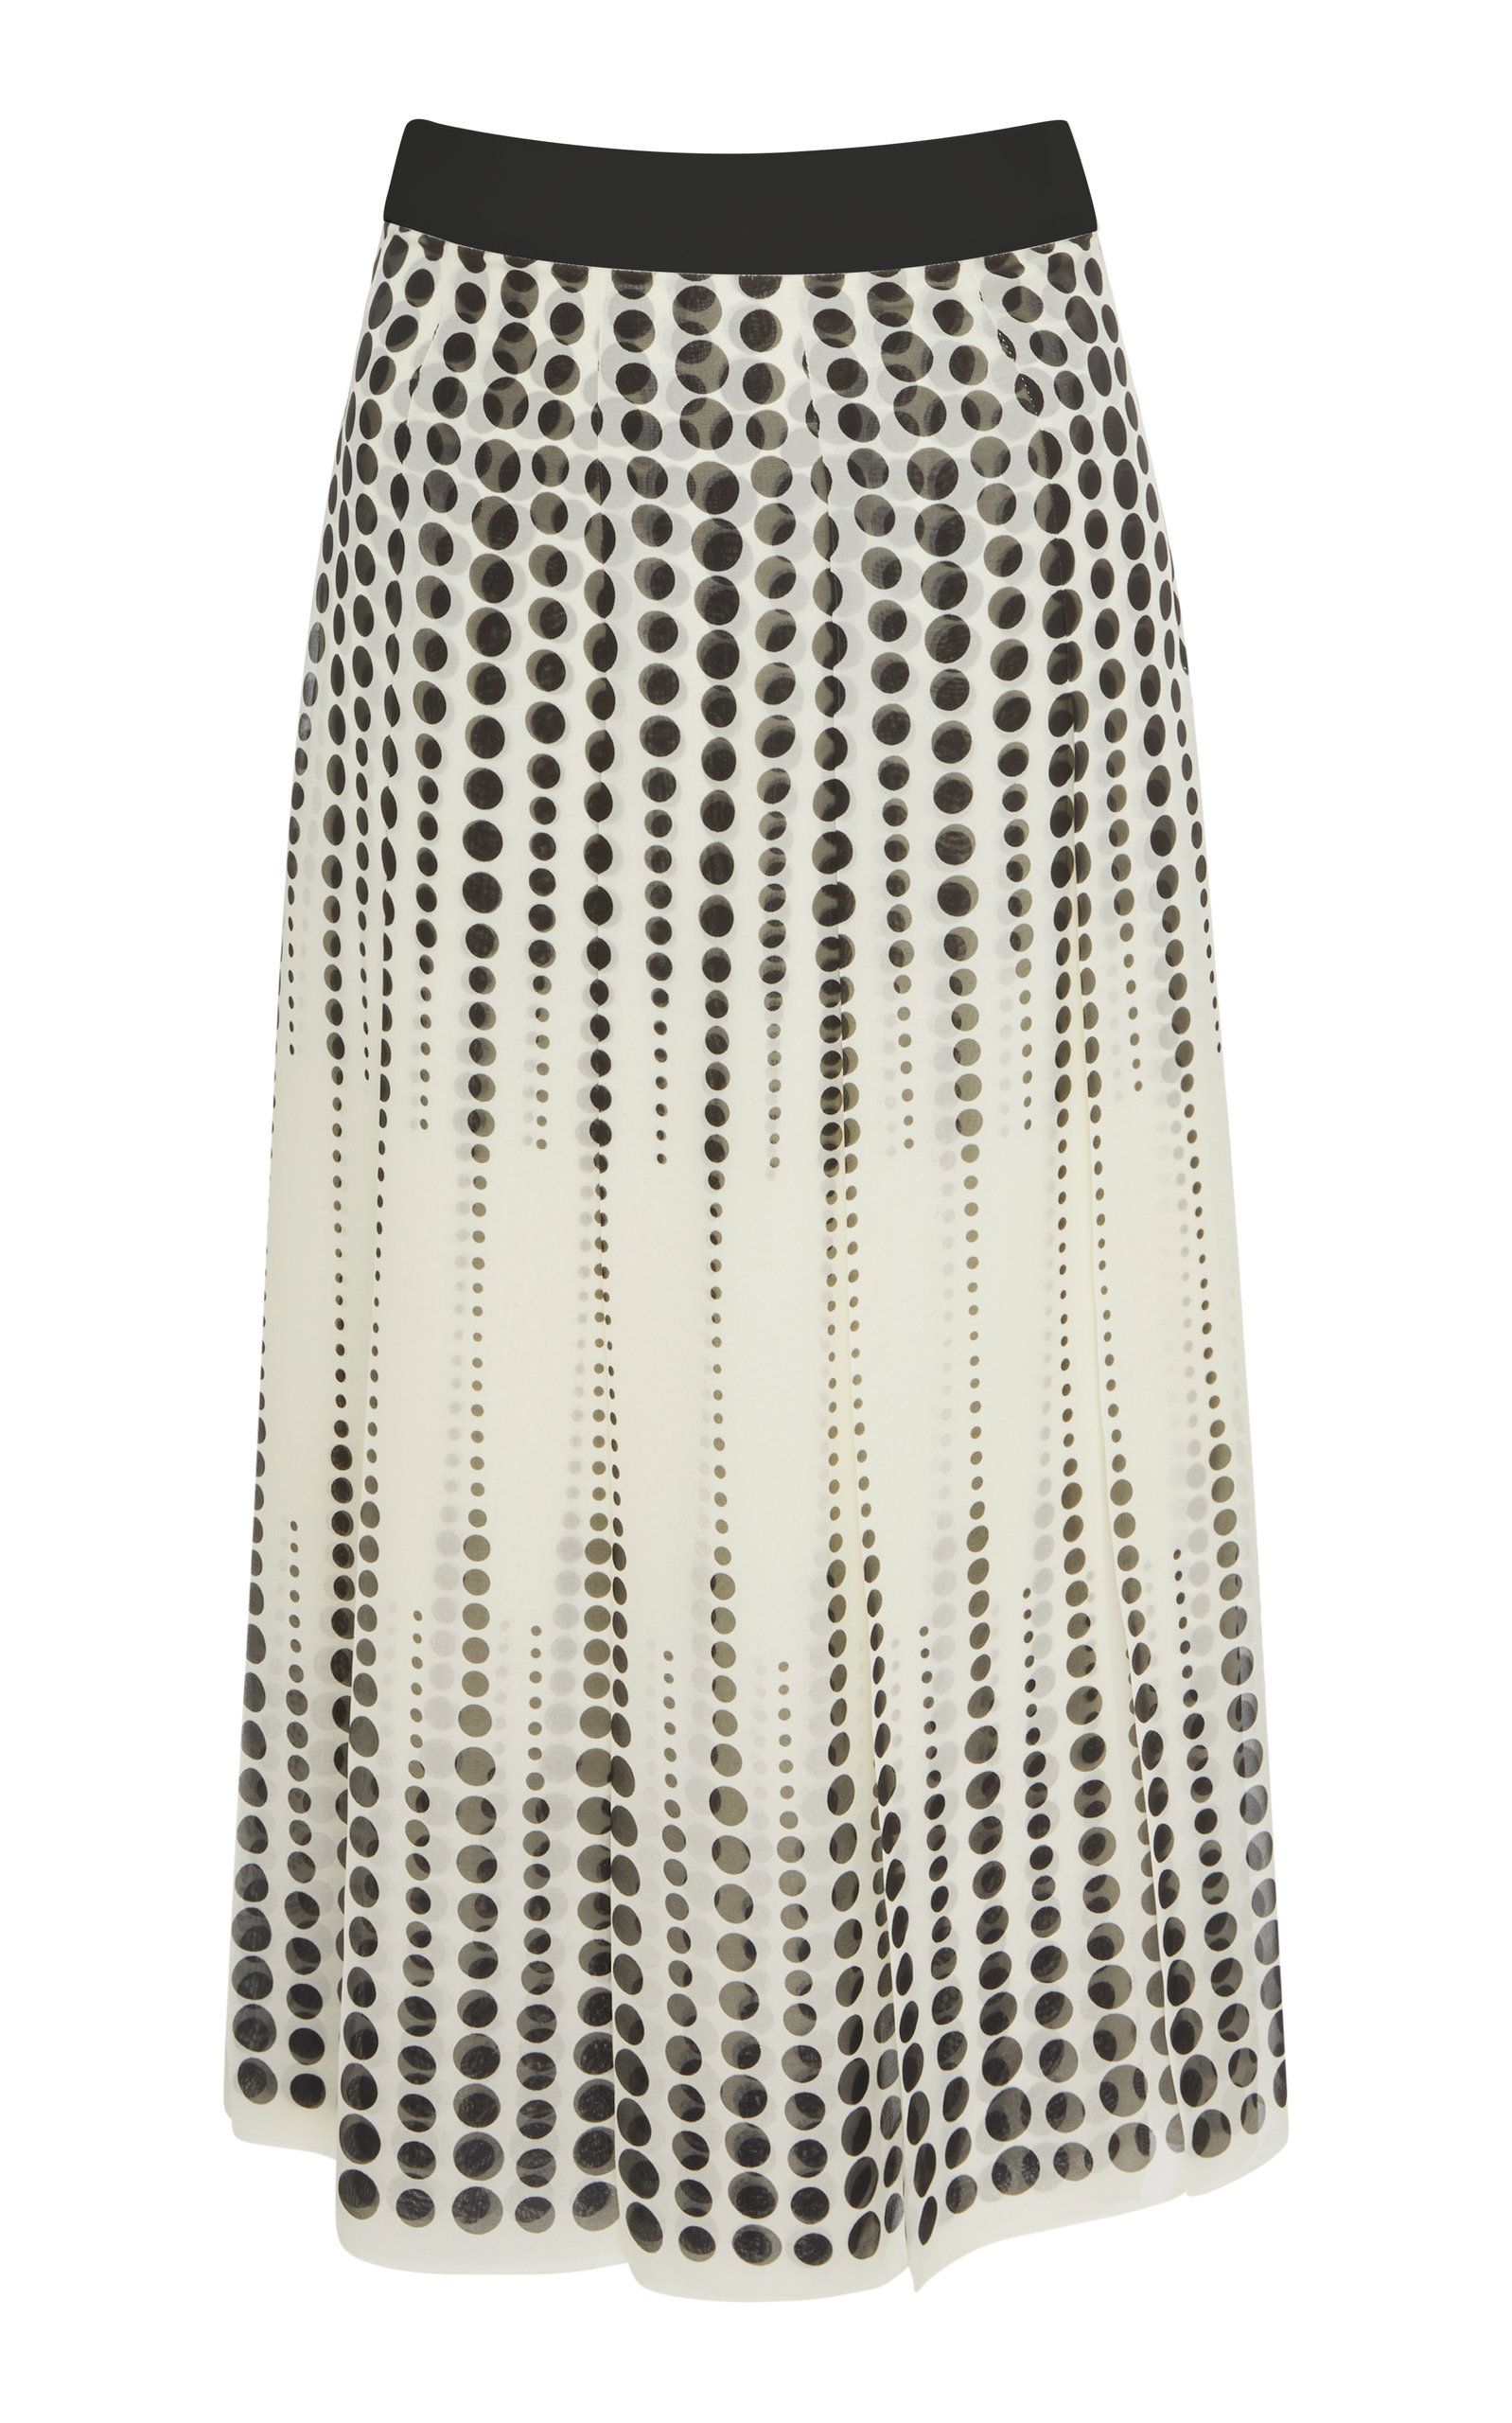 175ce77576 Click product to zoom. Polka-Dot Silk-Chiffon Midi Skirt by GIAMBATTISTA  VALLI Now Available on Moda Operandi